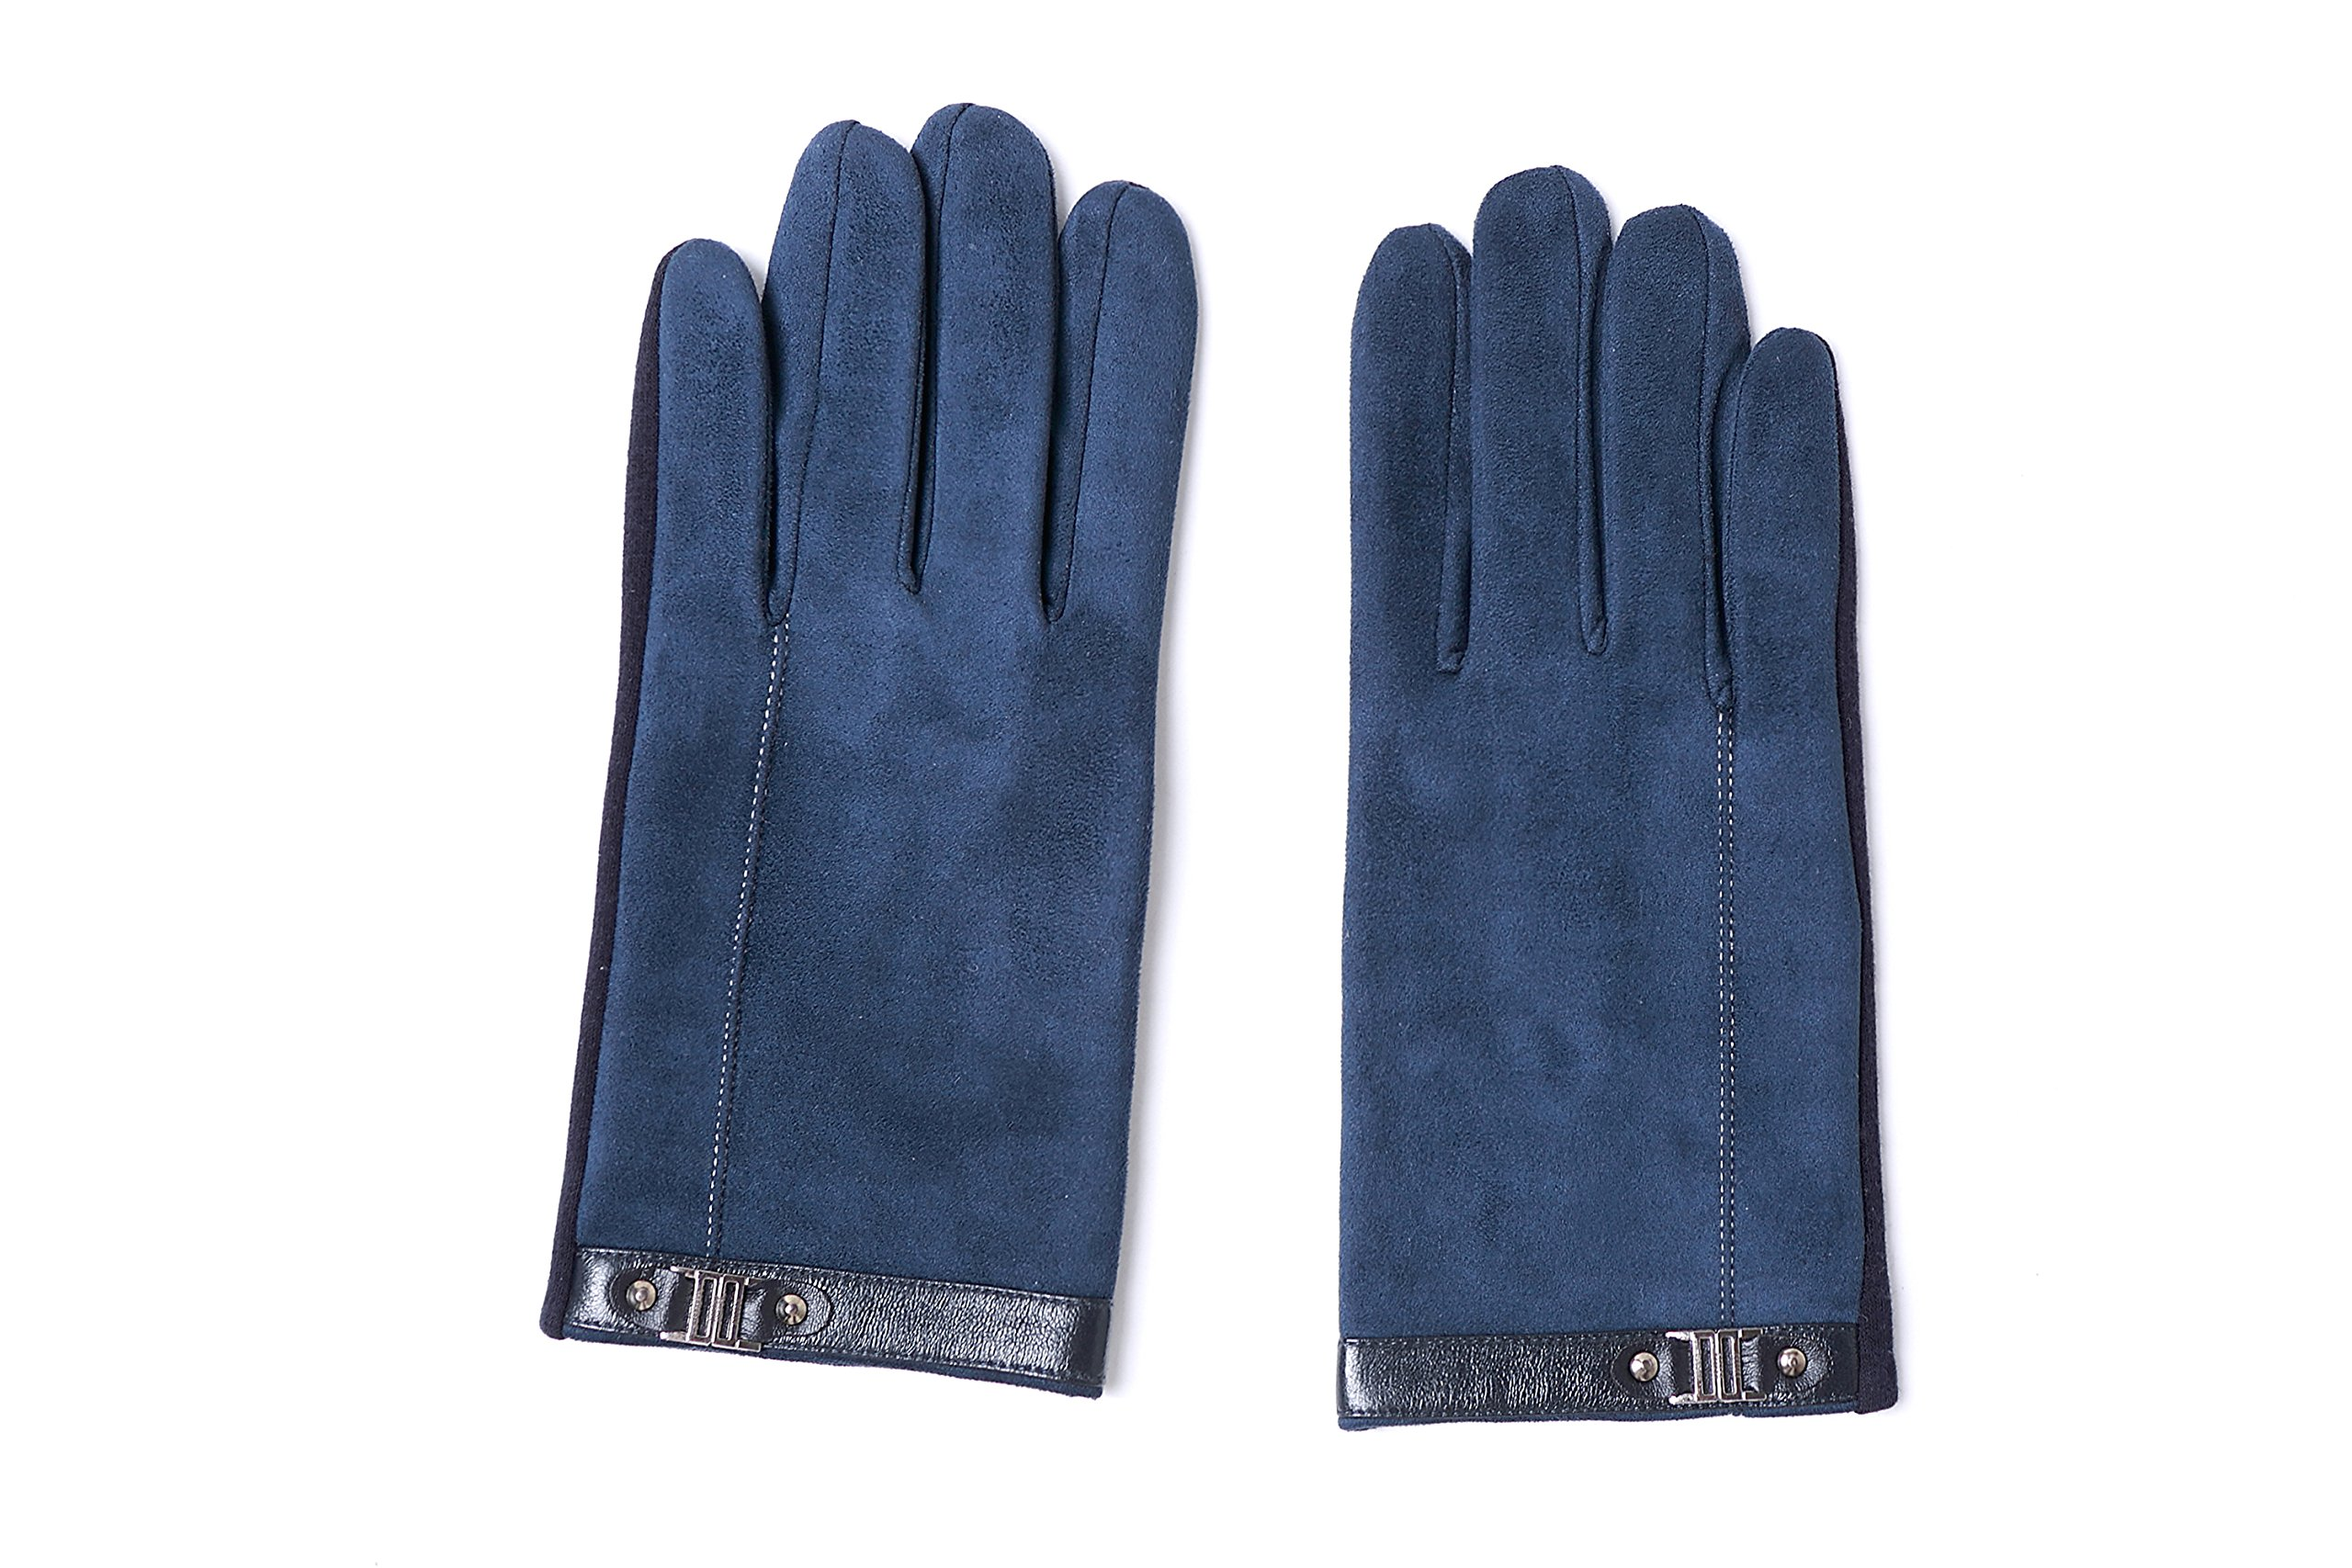 YISEVEN Men's Suede Chamois Leather Gloves Touchscreen Flat Design Plain Lined Luxury Soft Hand Warm Fur Heated Lining for Winter Spring Stylish Dress Work Xmas Gift and Motorcycle Driving, Blue M